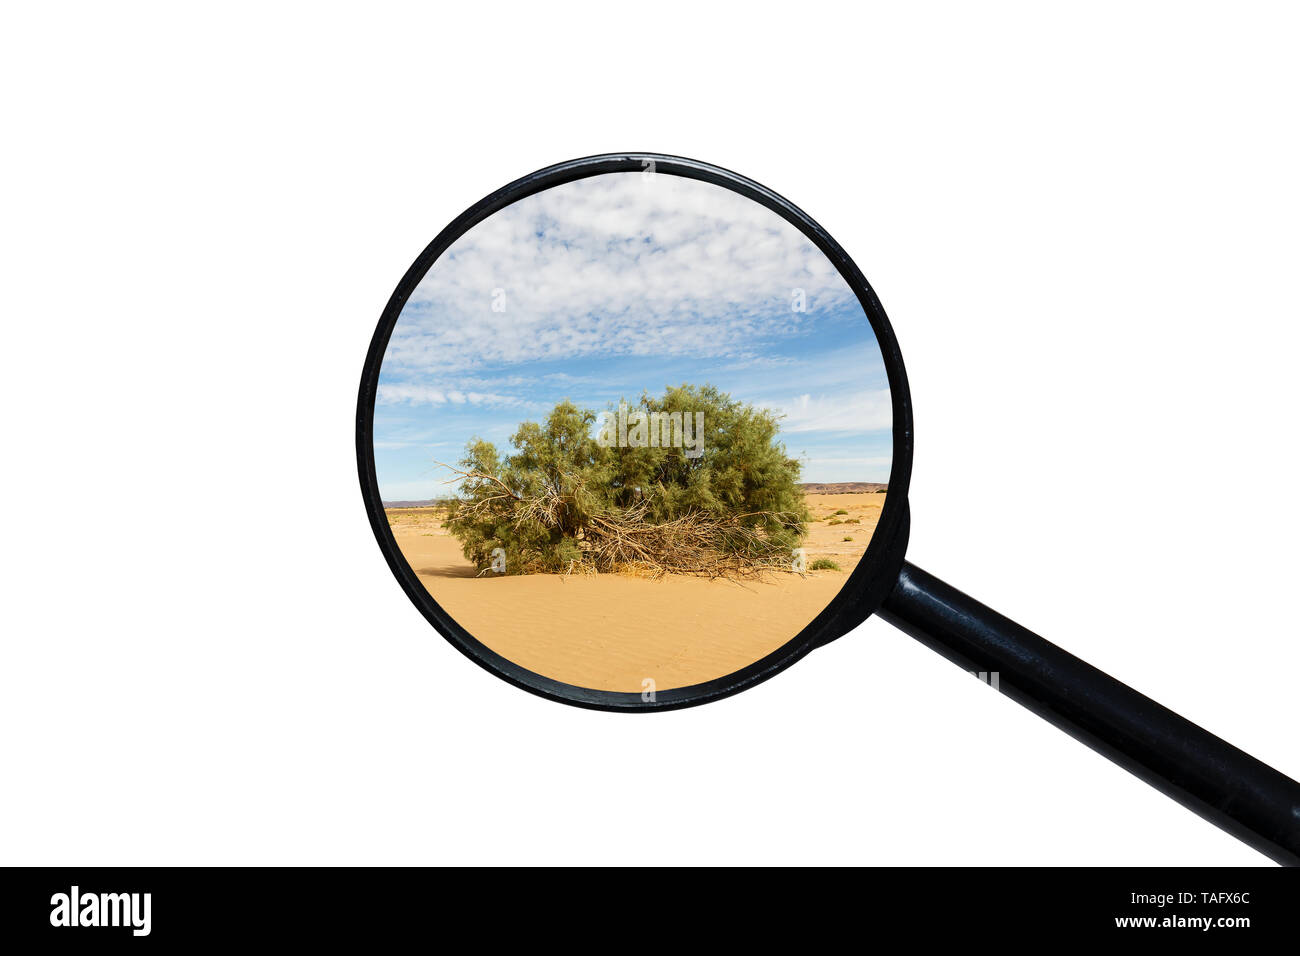 green shrub in the Sahara desert, view through a magnifying glass on a white background - Stock Image